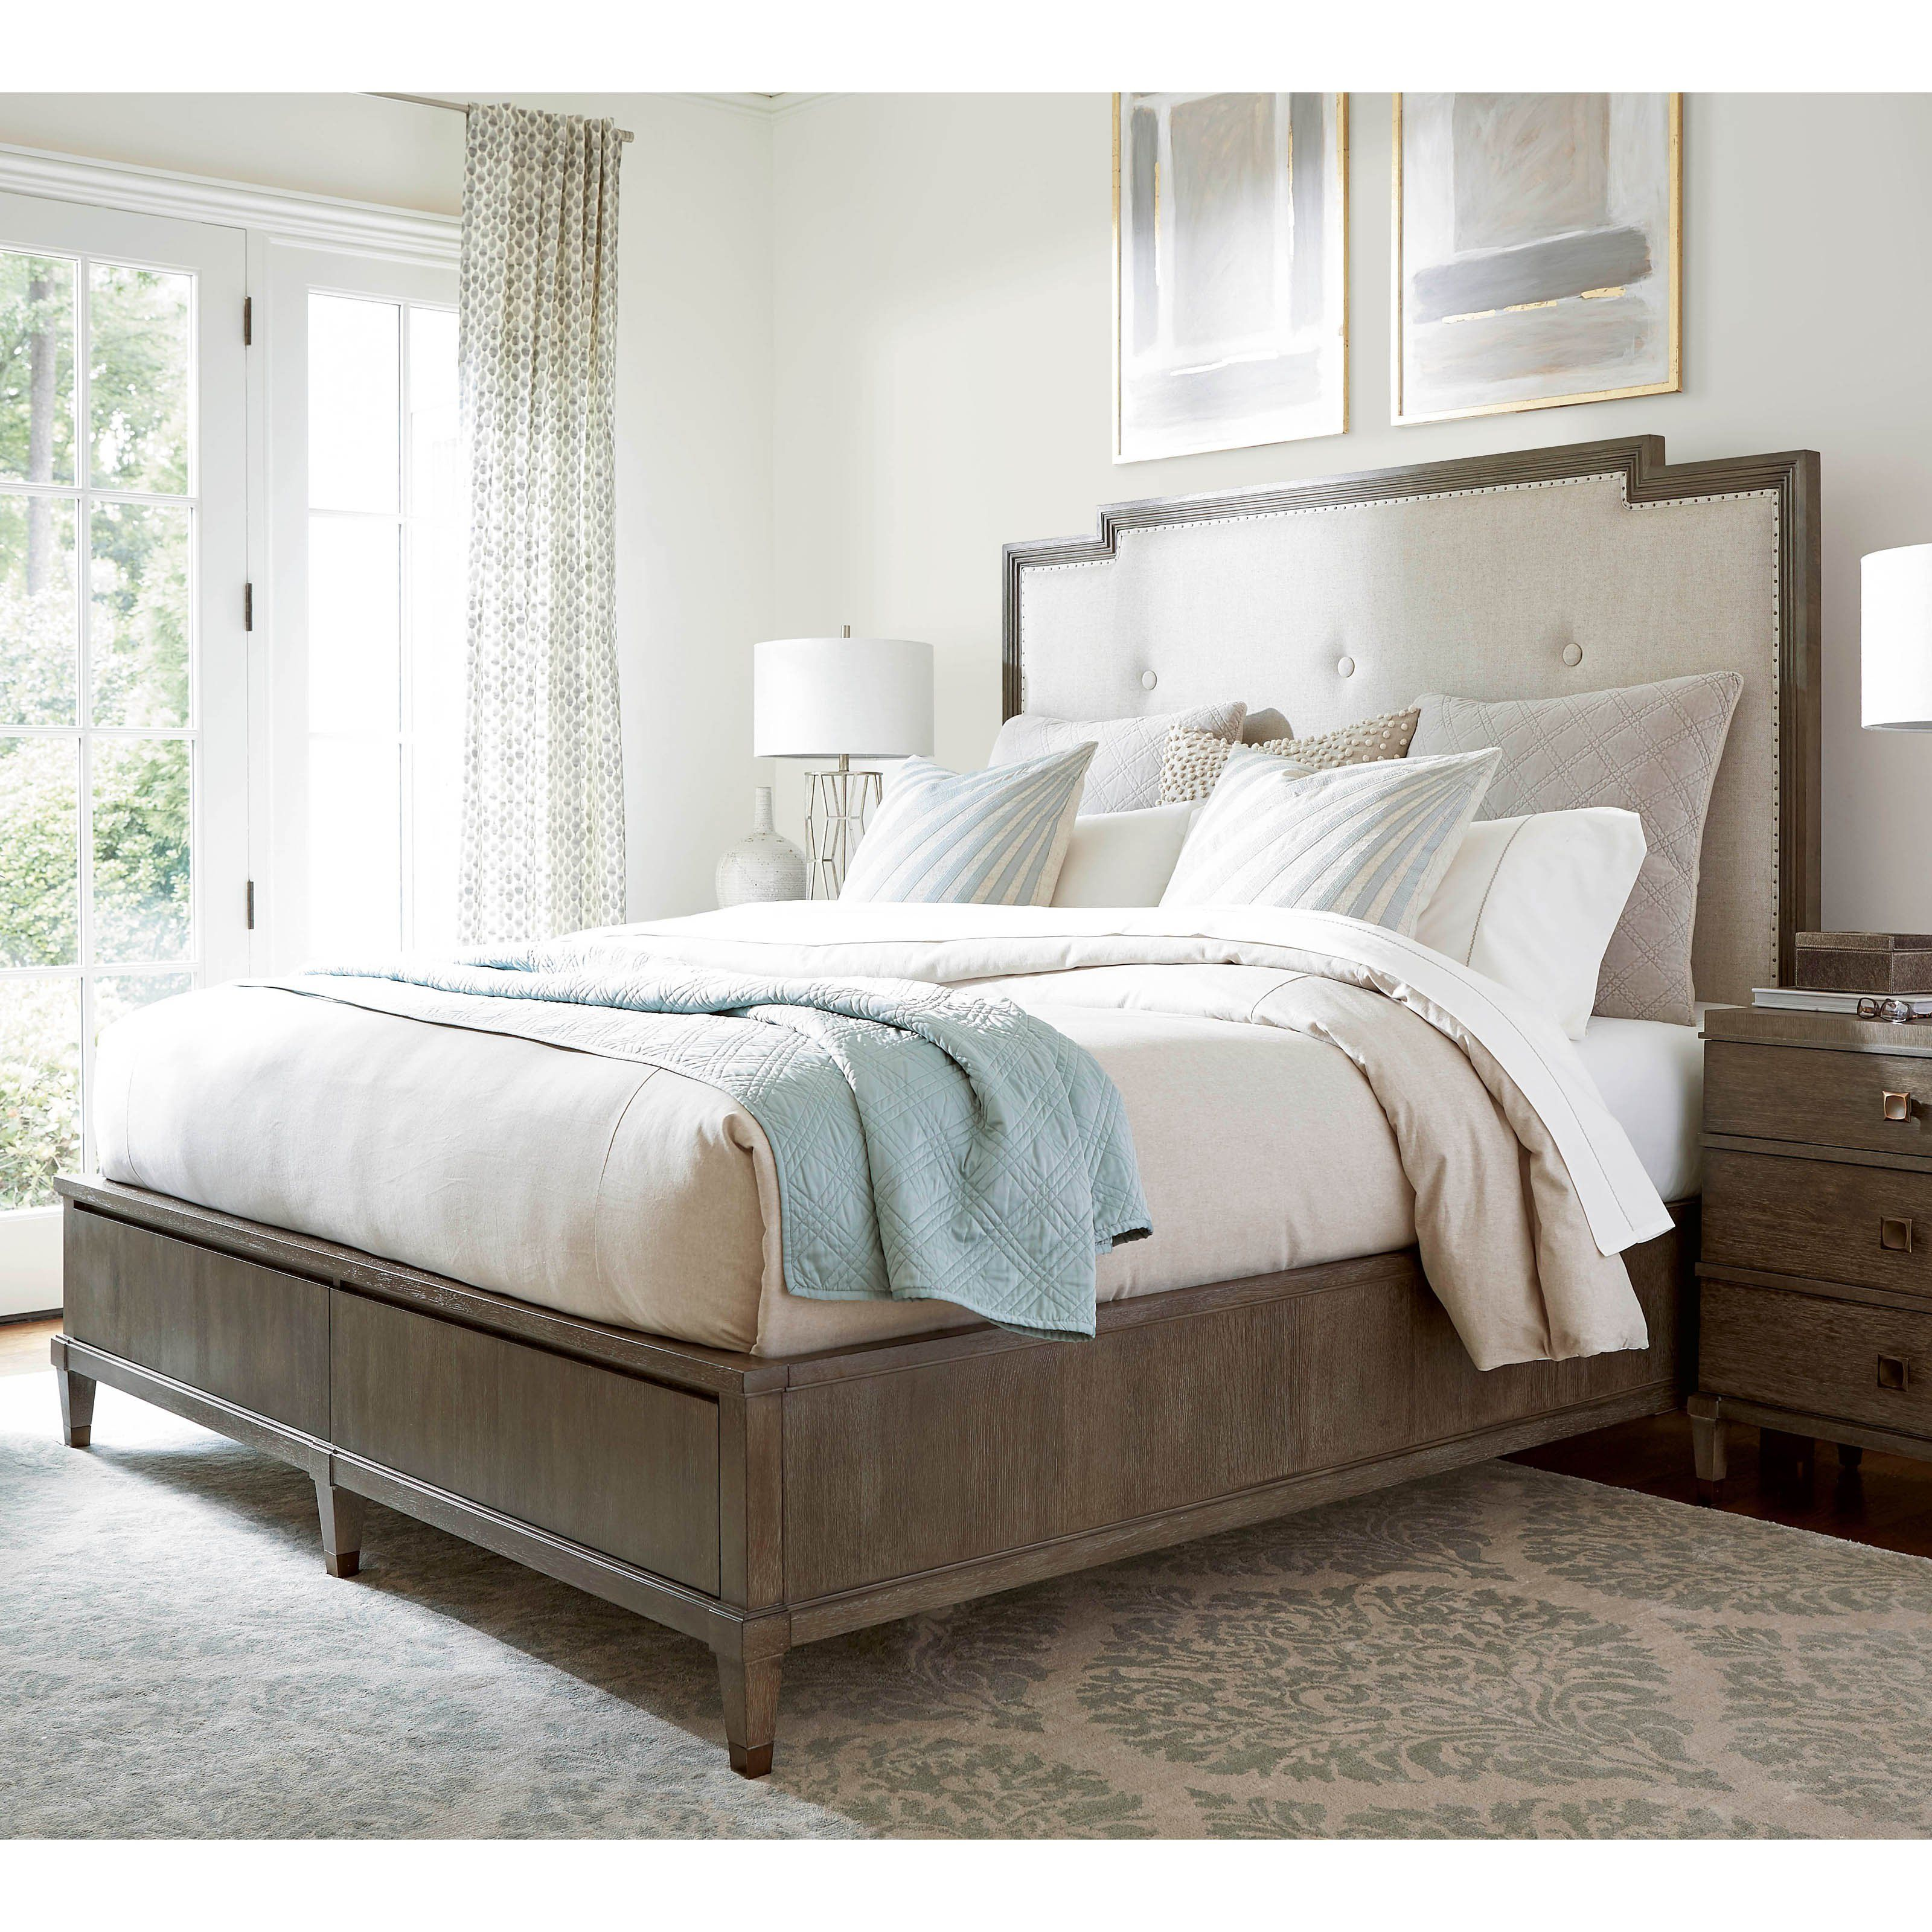 Universal Furniture Playlist Harmony Upholstered Storage Bed | from ...